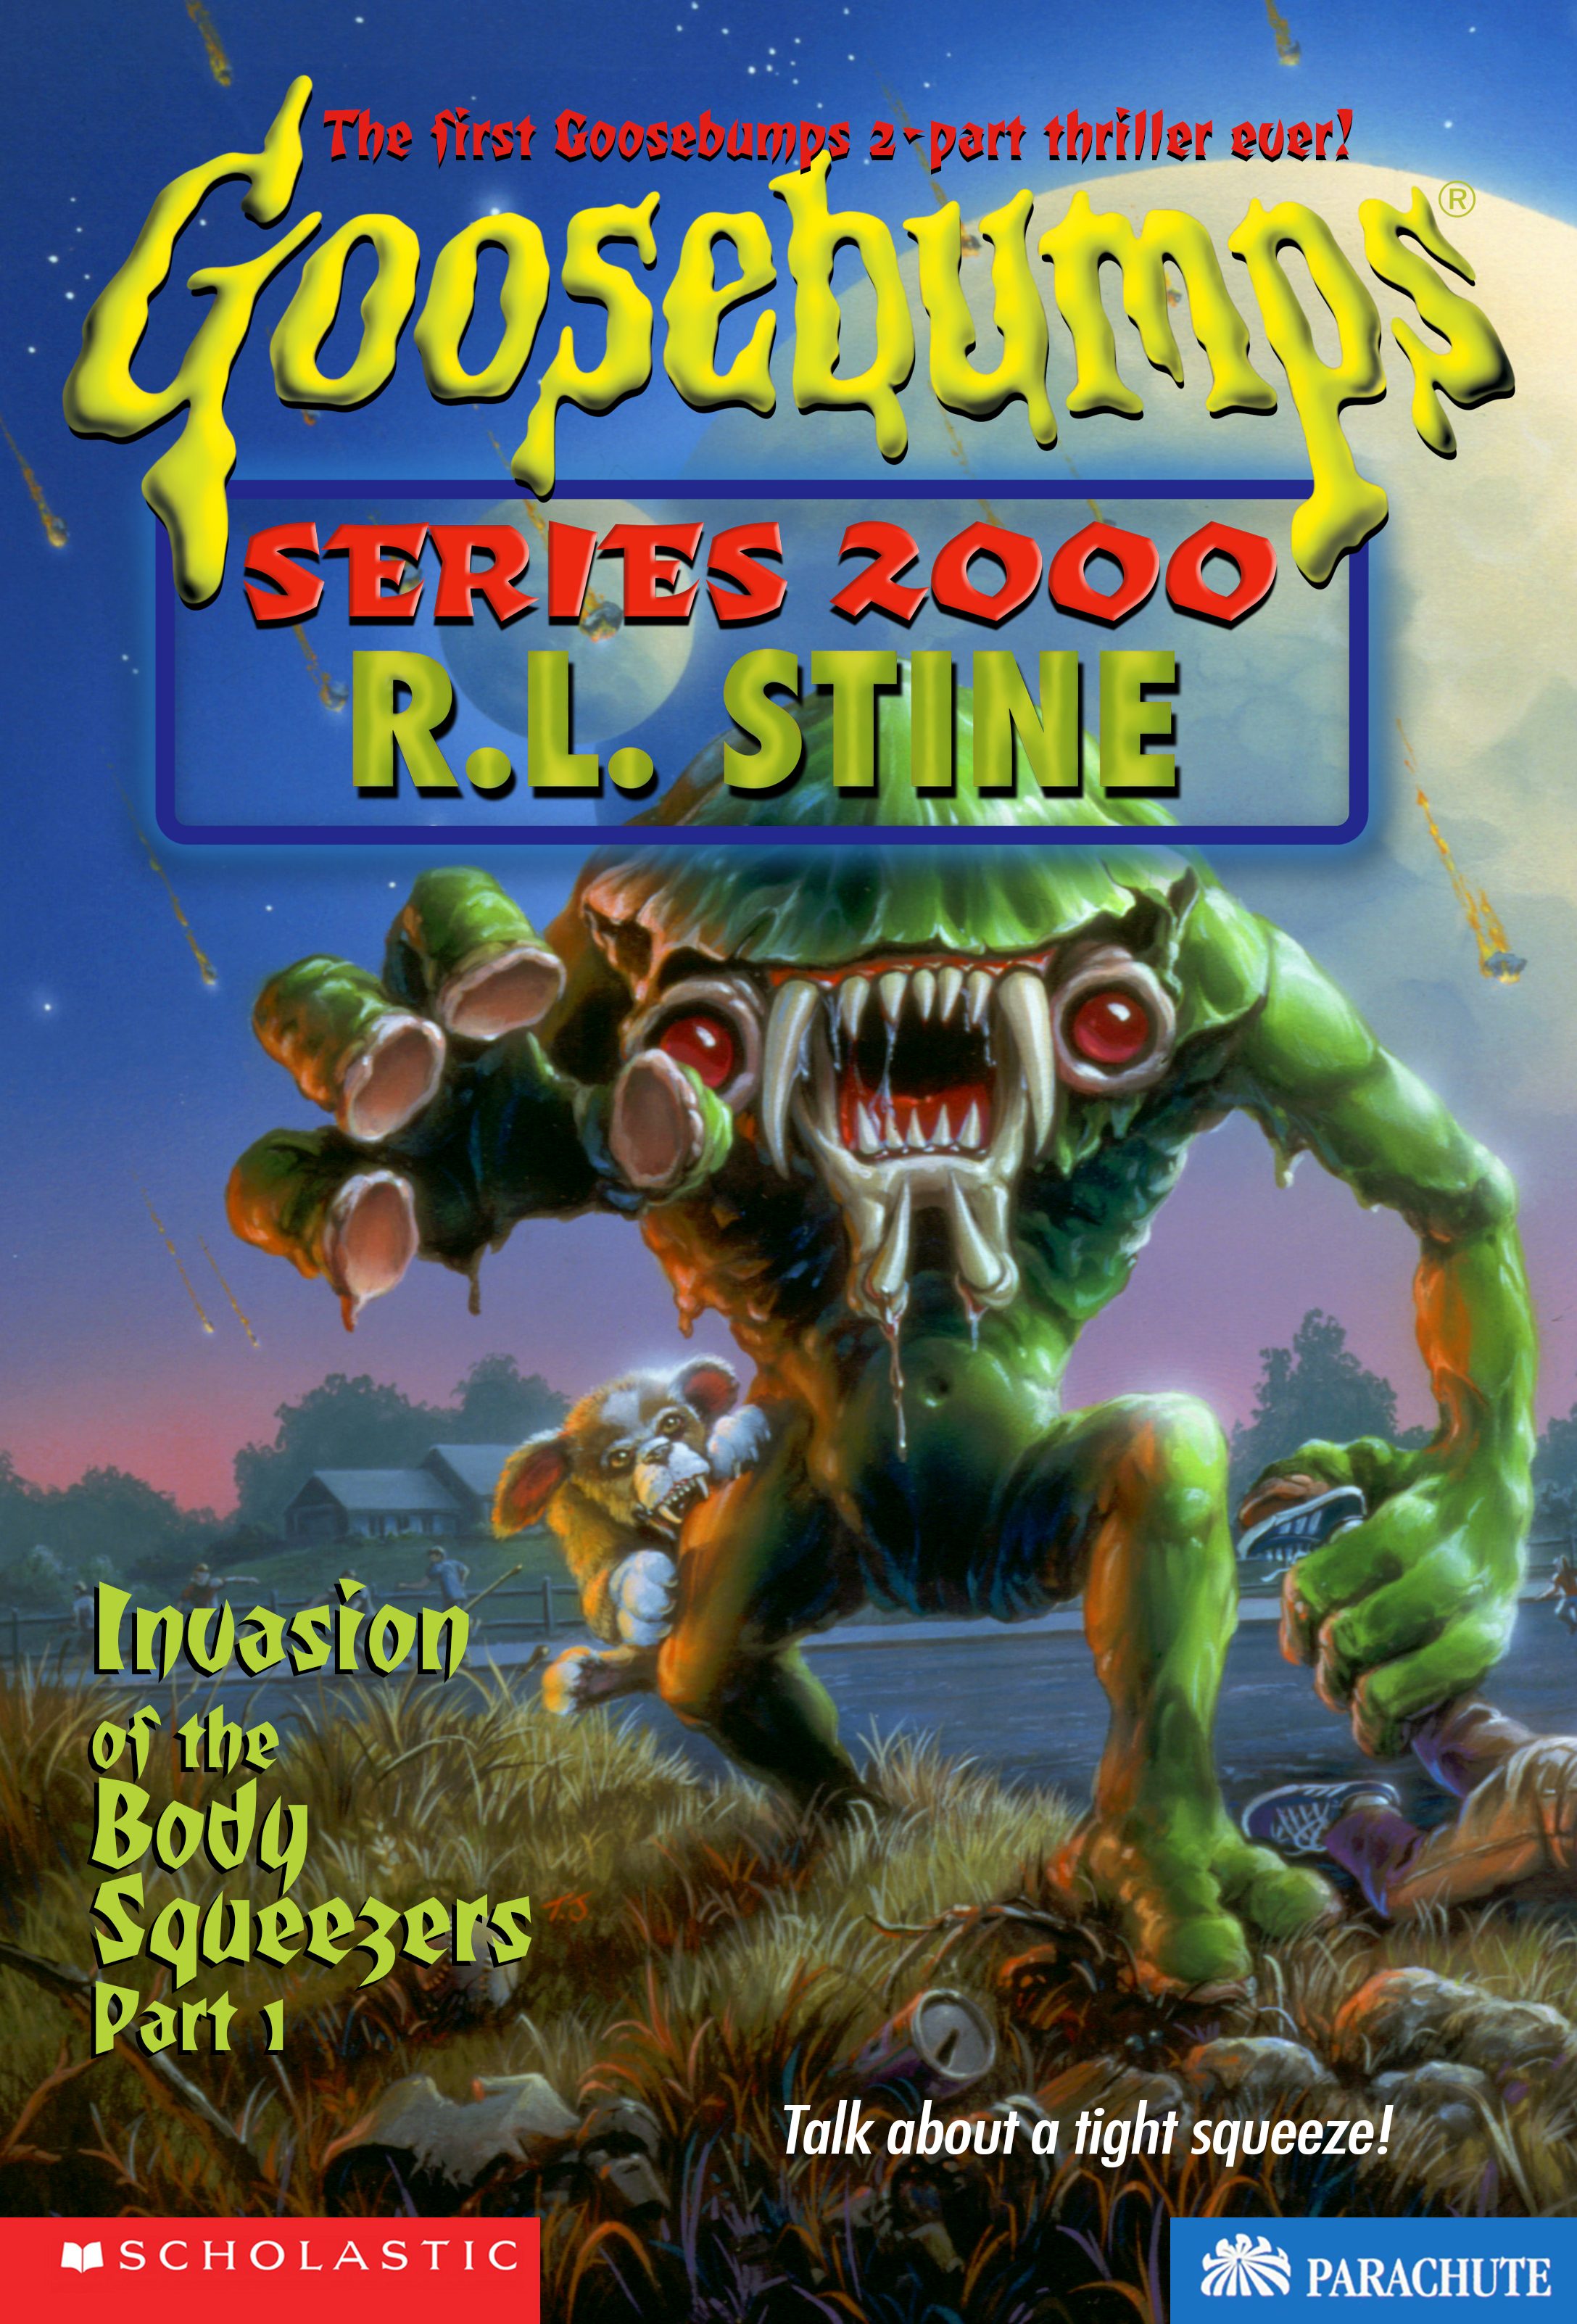 Invasion of the Body Squeezers; Part 1 (Cover).jpg